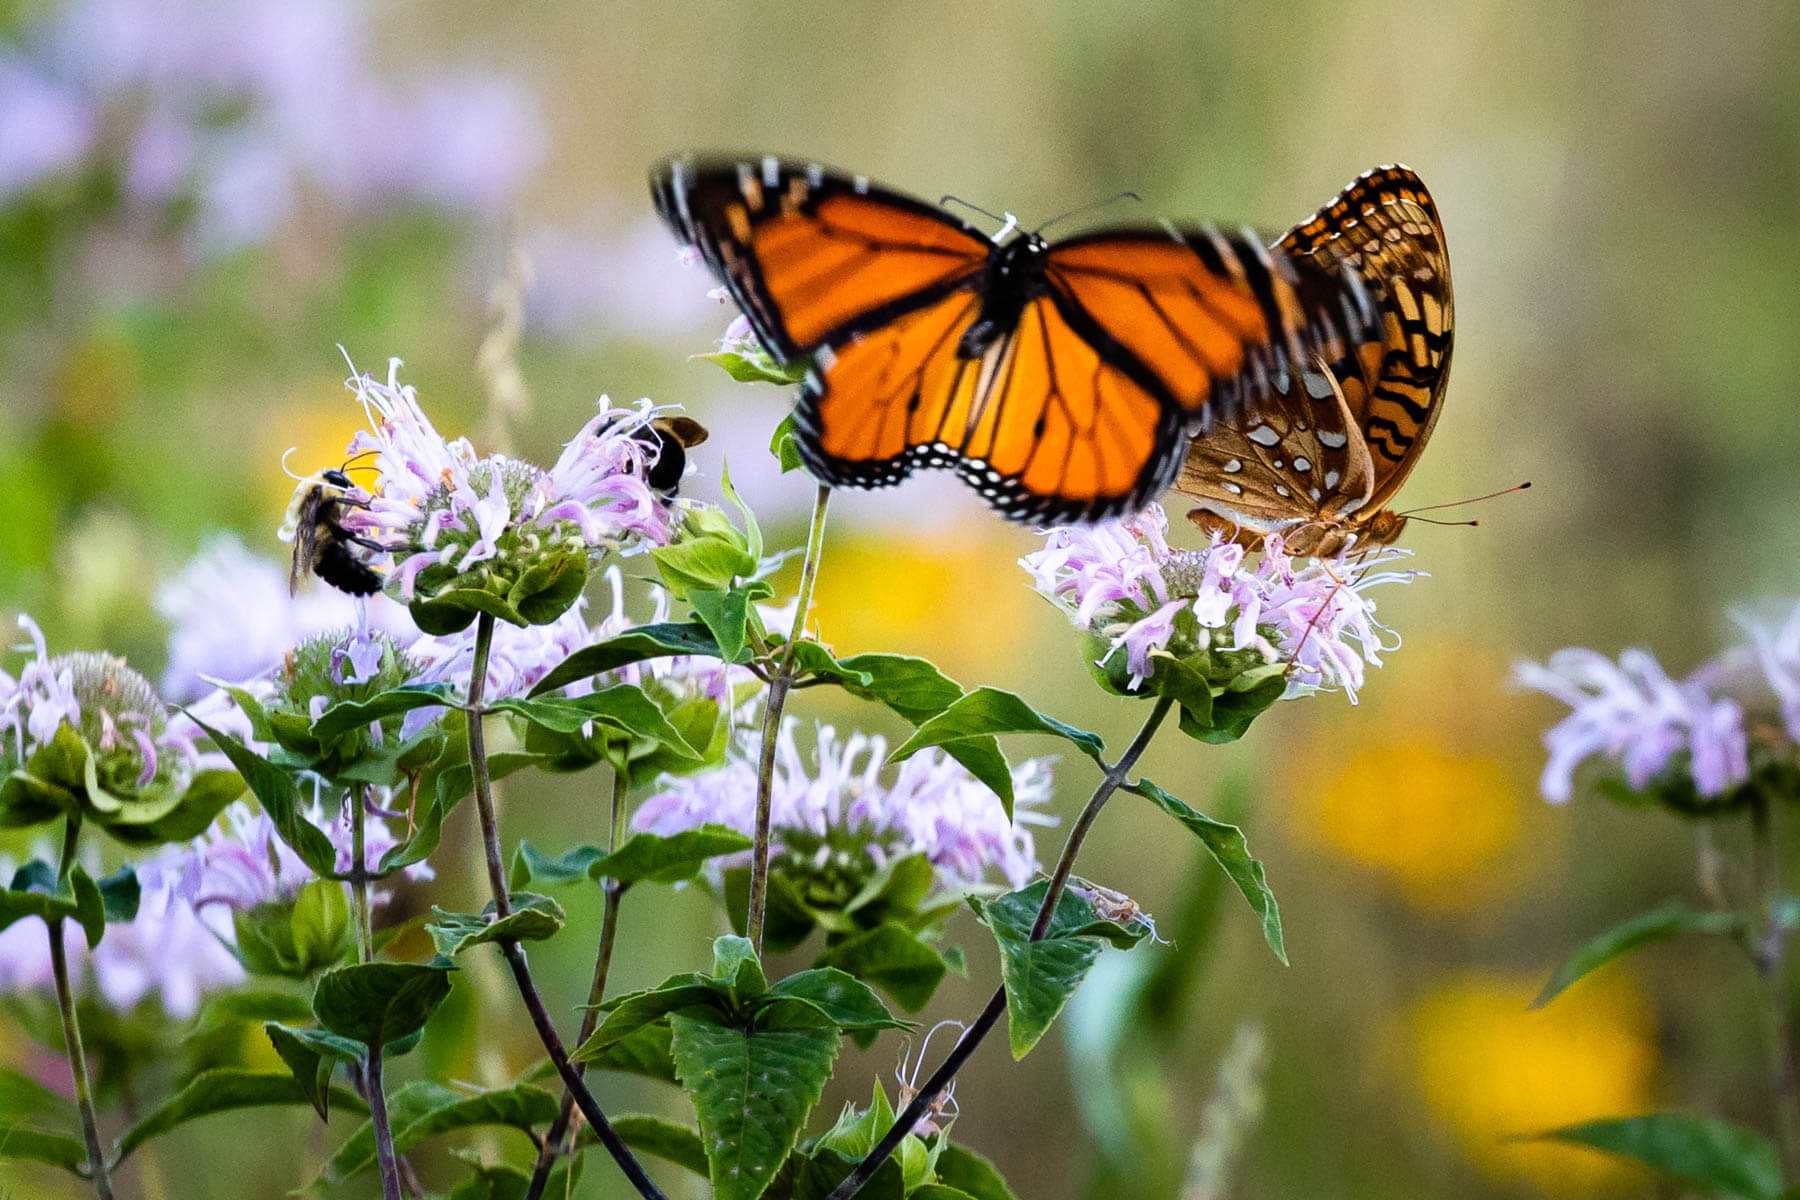 Pollinators are attracted to blooming native wildflowers